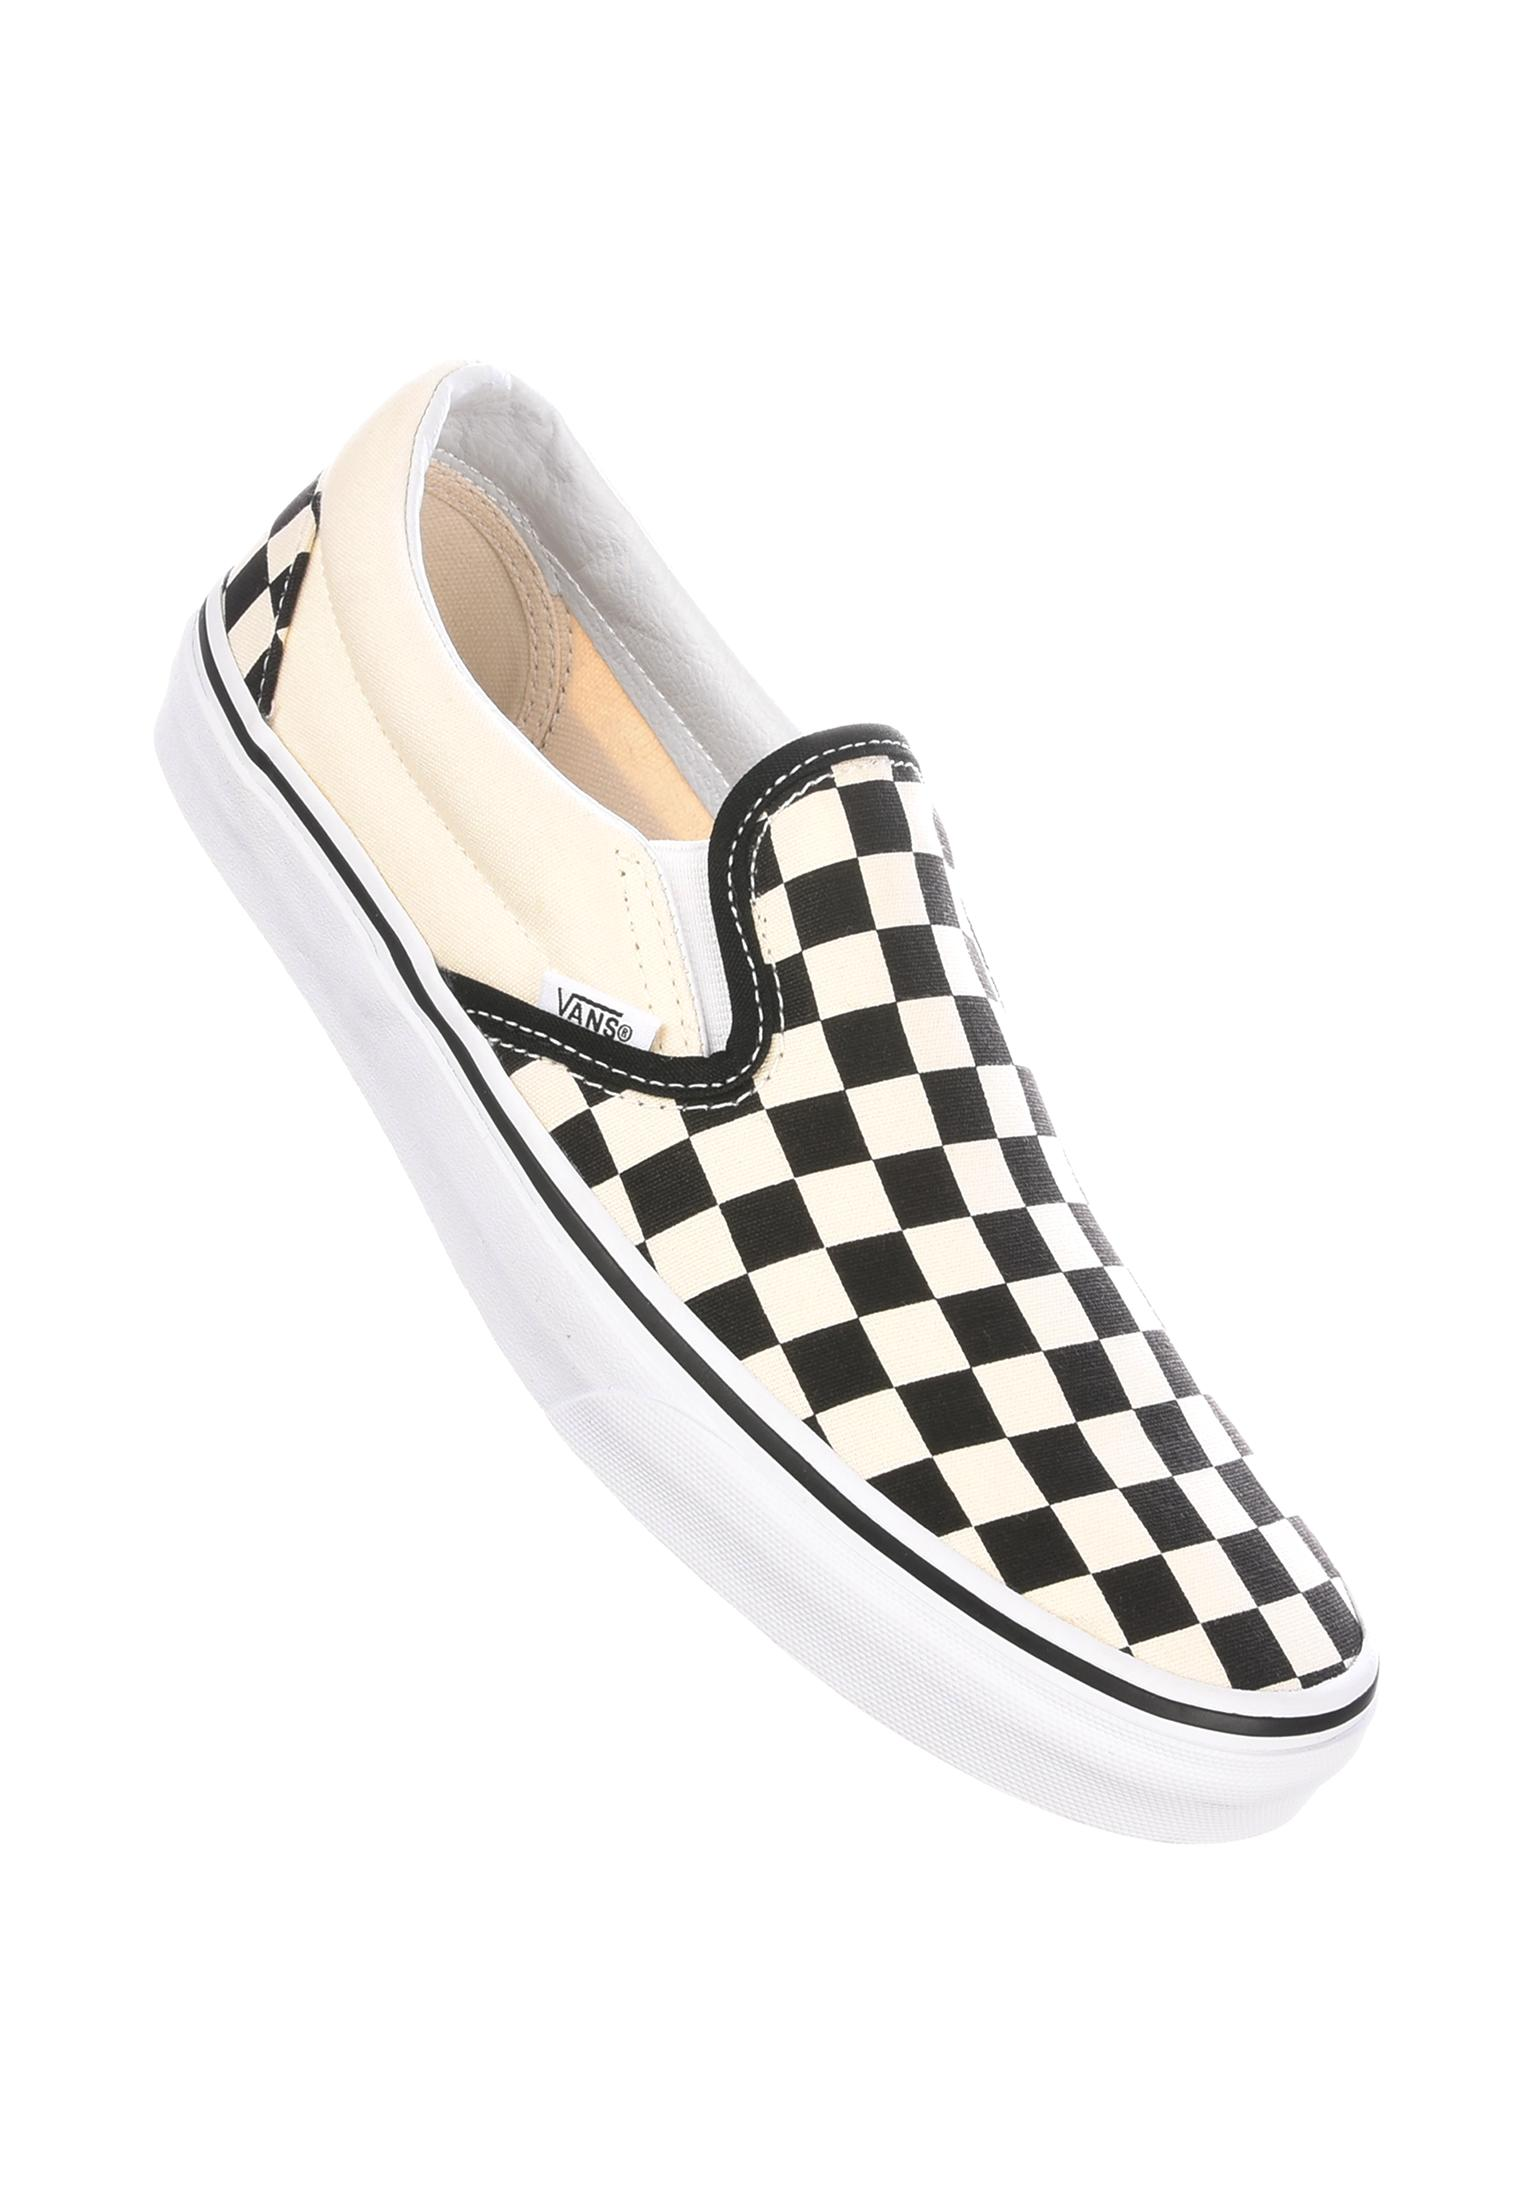 d24869f9411289 Classic-Slip-On Vans All Shoes in black-white-checkerboard for Men ...